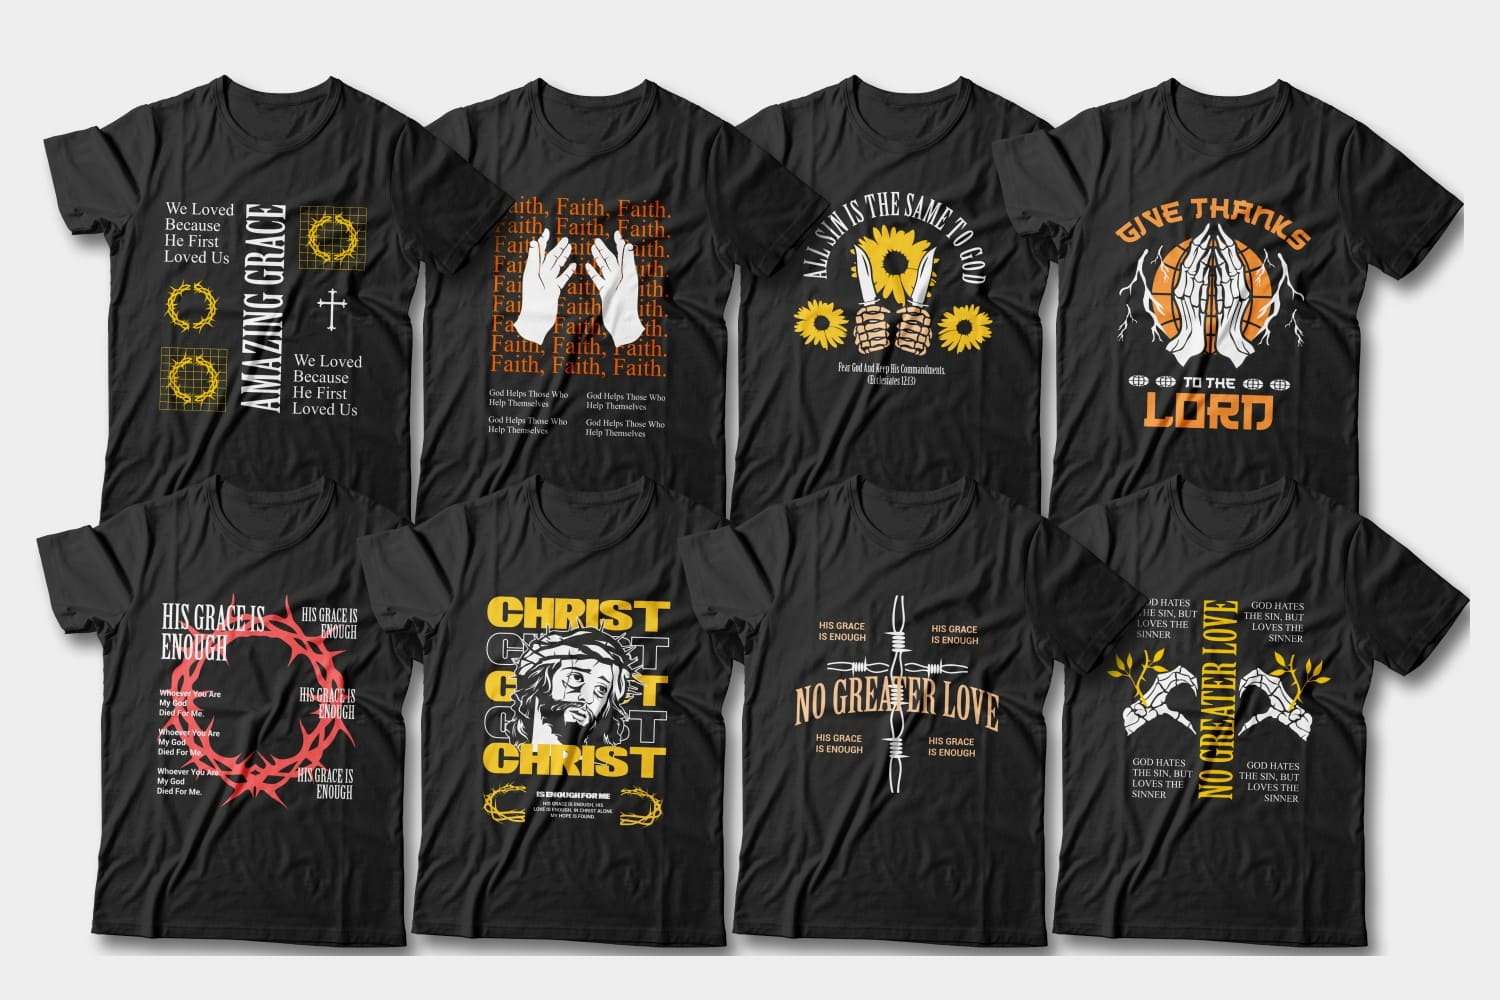 Christian t-shirts with modern graphic end motivated phrases.